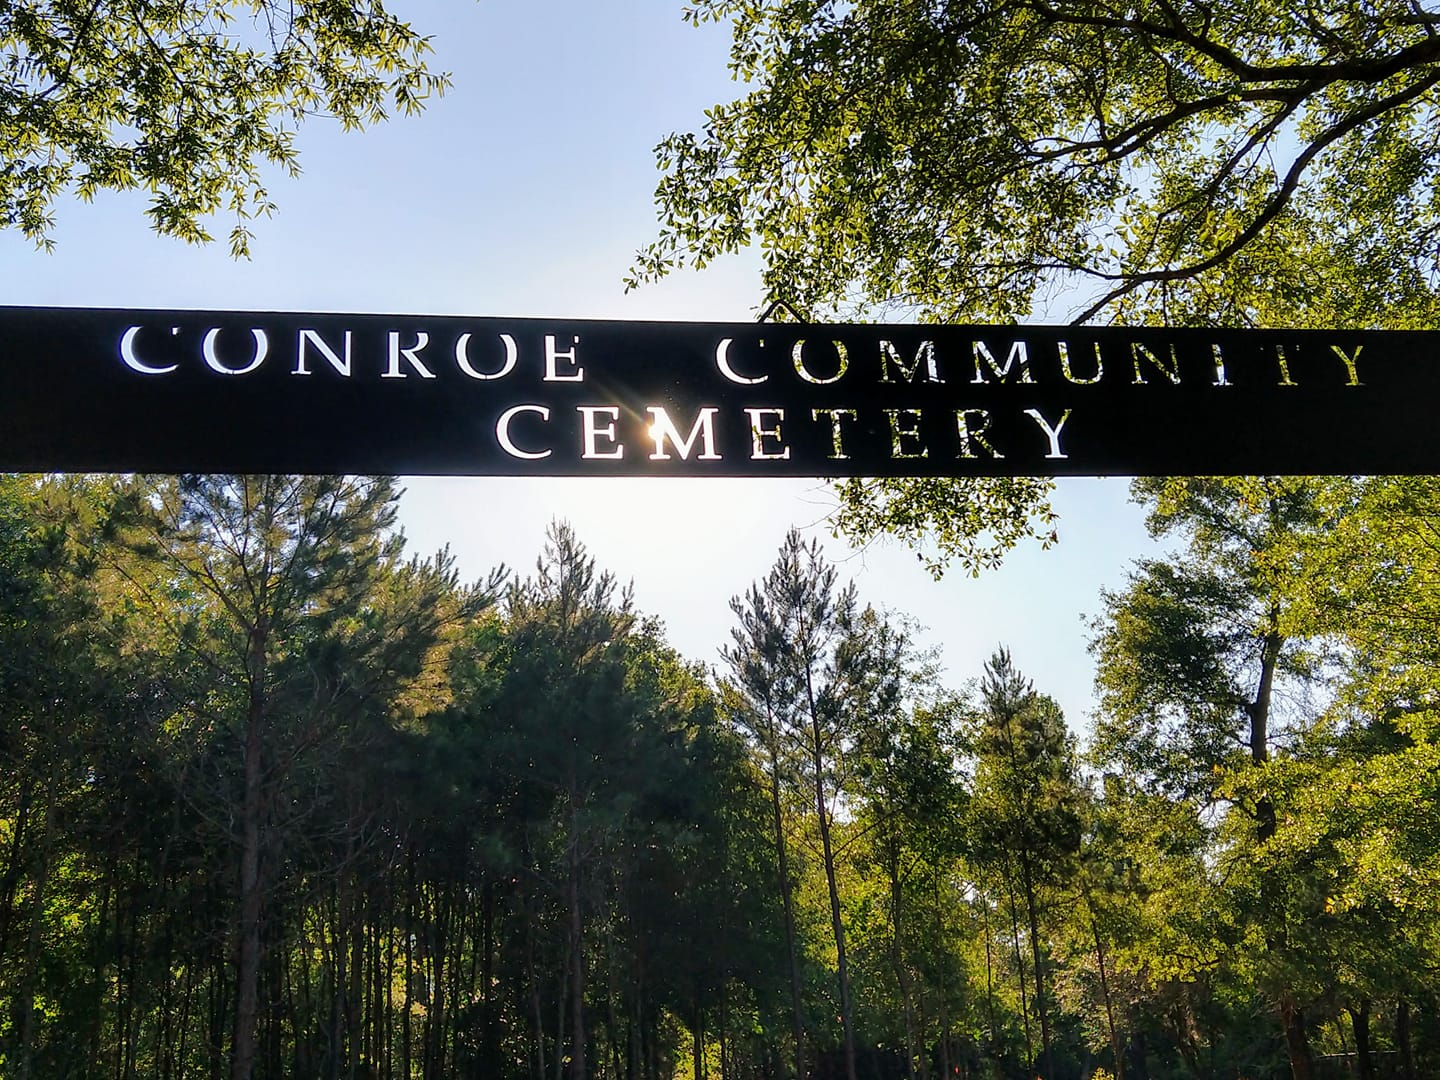 Sign Dedication and Cemetery Cleanup, November 7, 2020